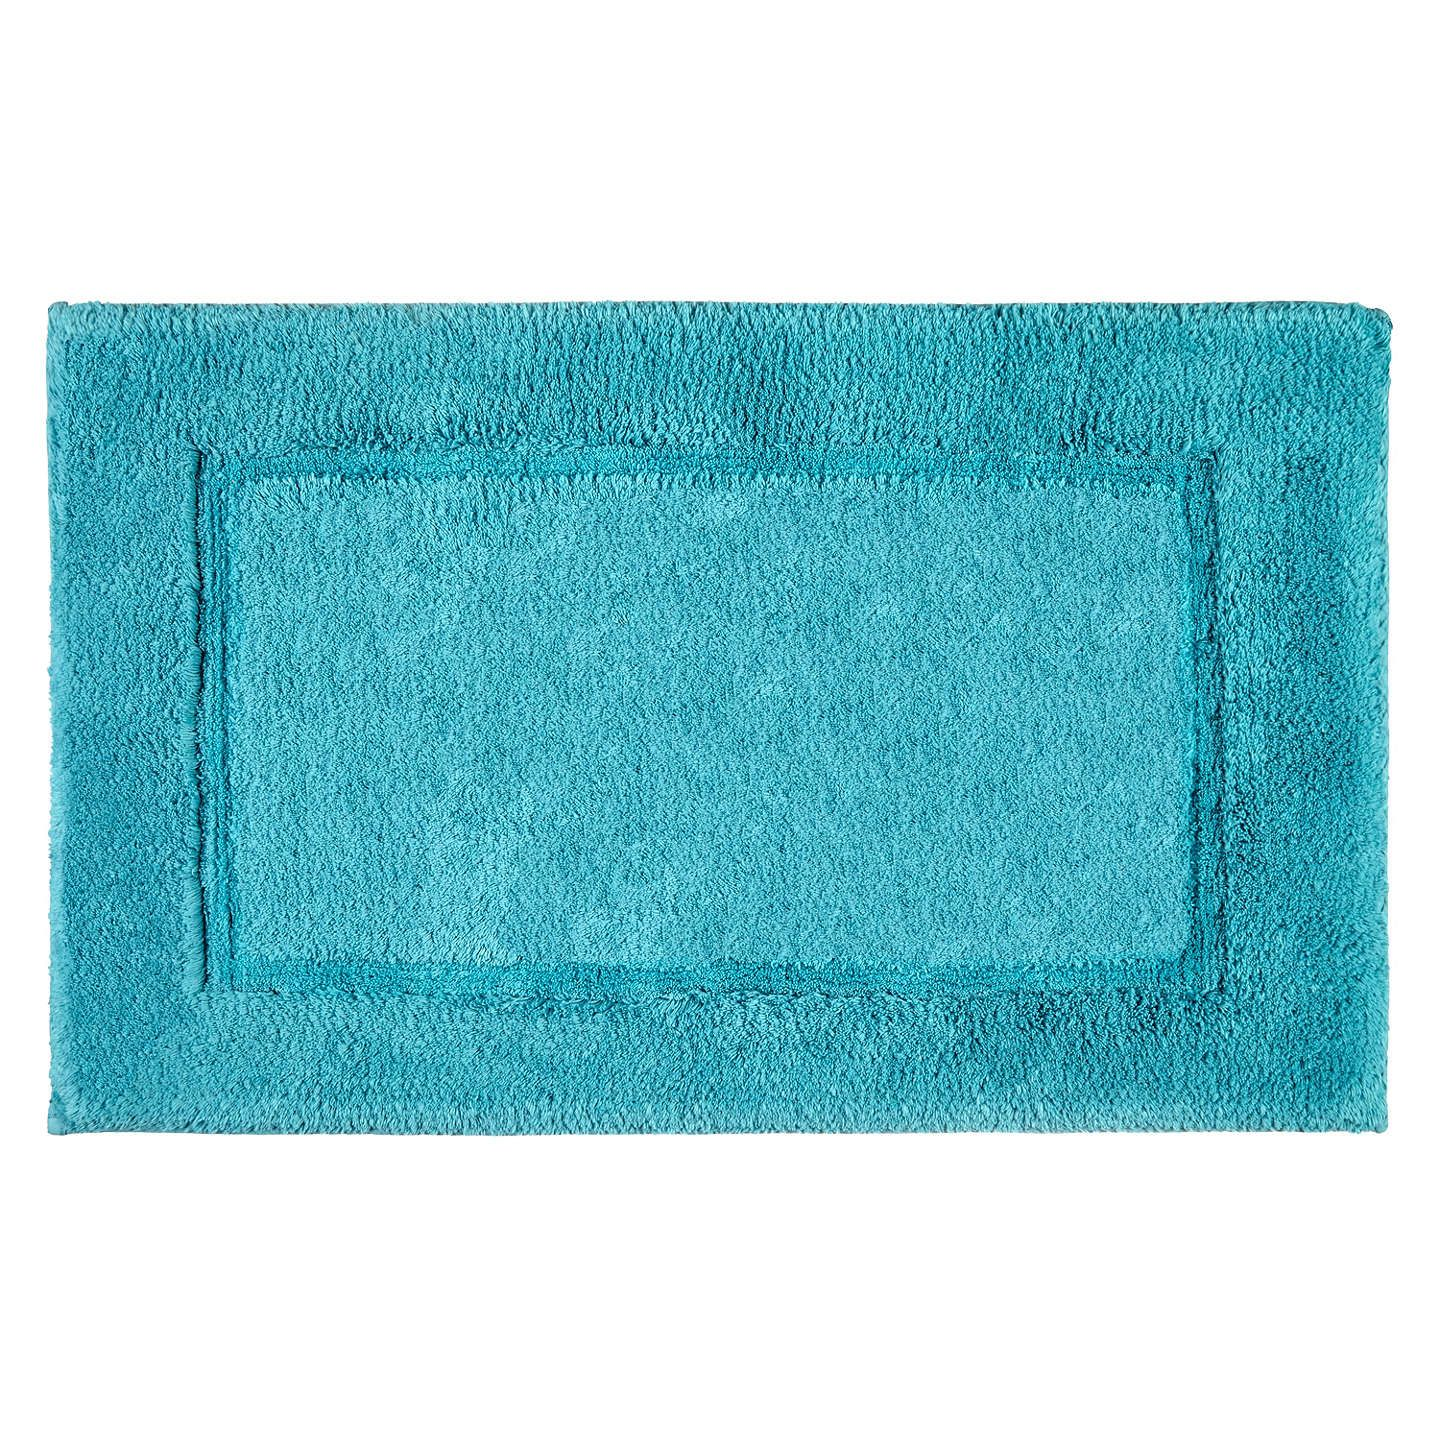 John Lewis Partners Deep Pile Bath Mat With Microfresh Technology 50 X 80cm Jaipur Pink Bath Mat Egyptian Cotton Towels John Lewis